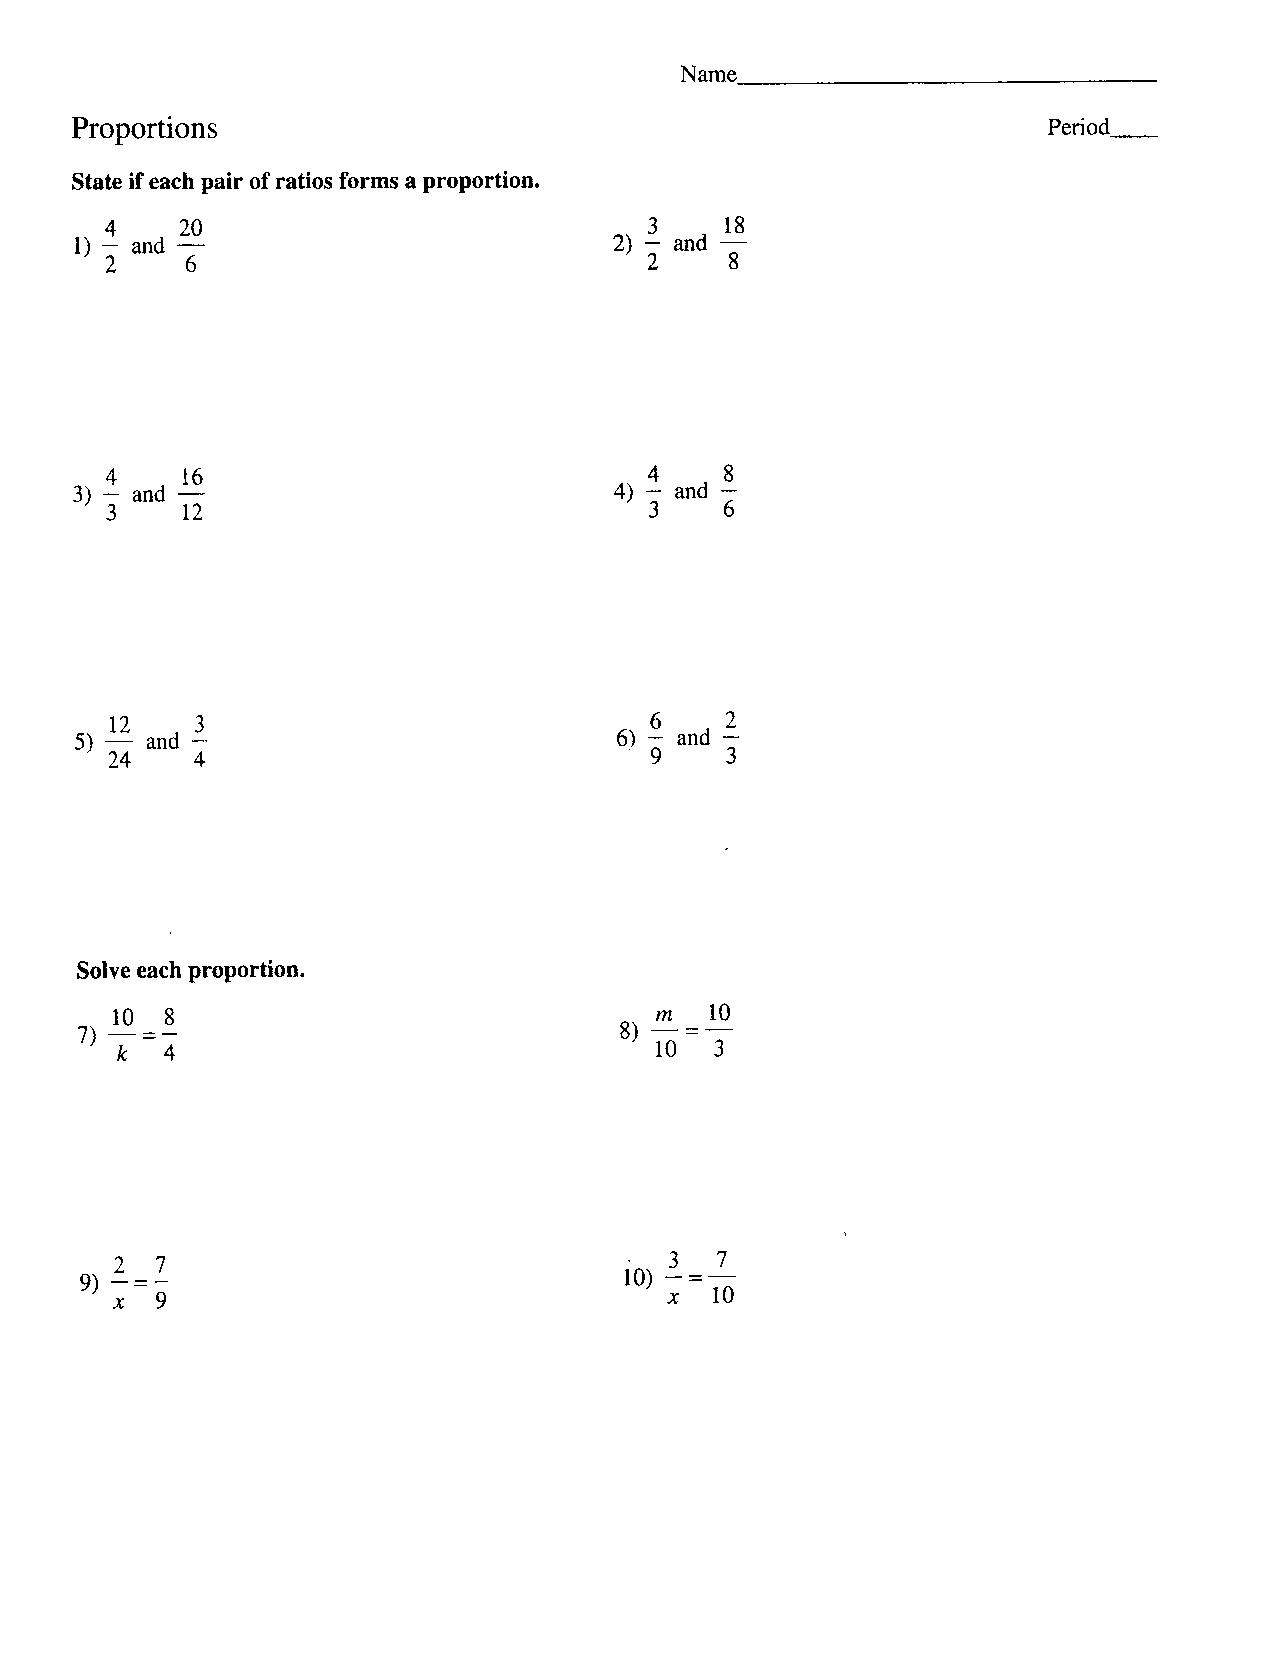 Proportions Problems Worksheet